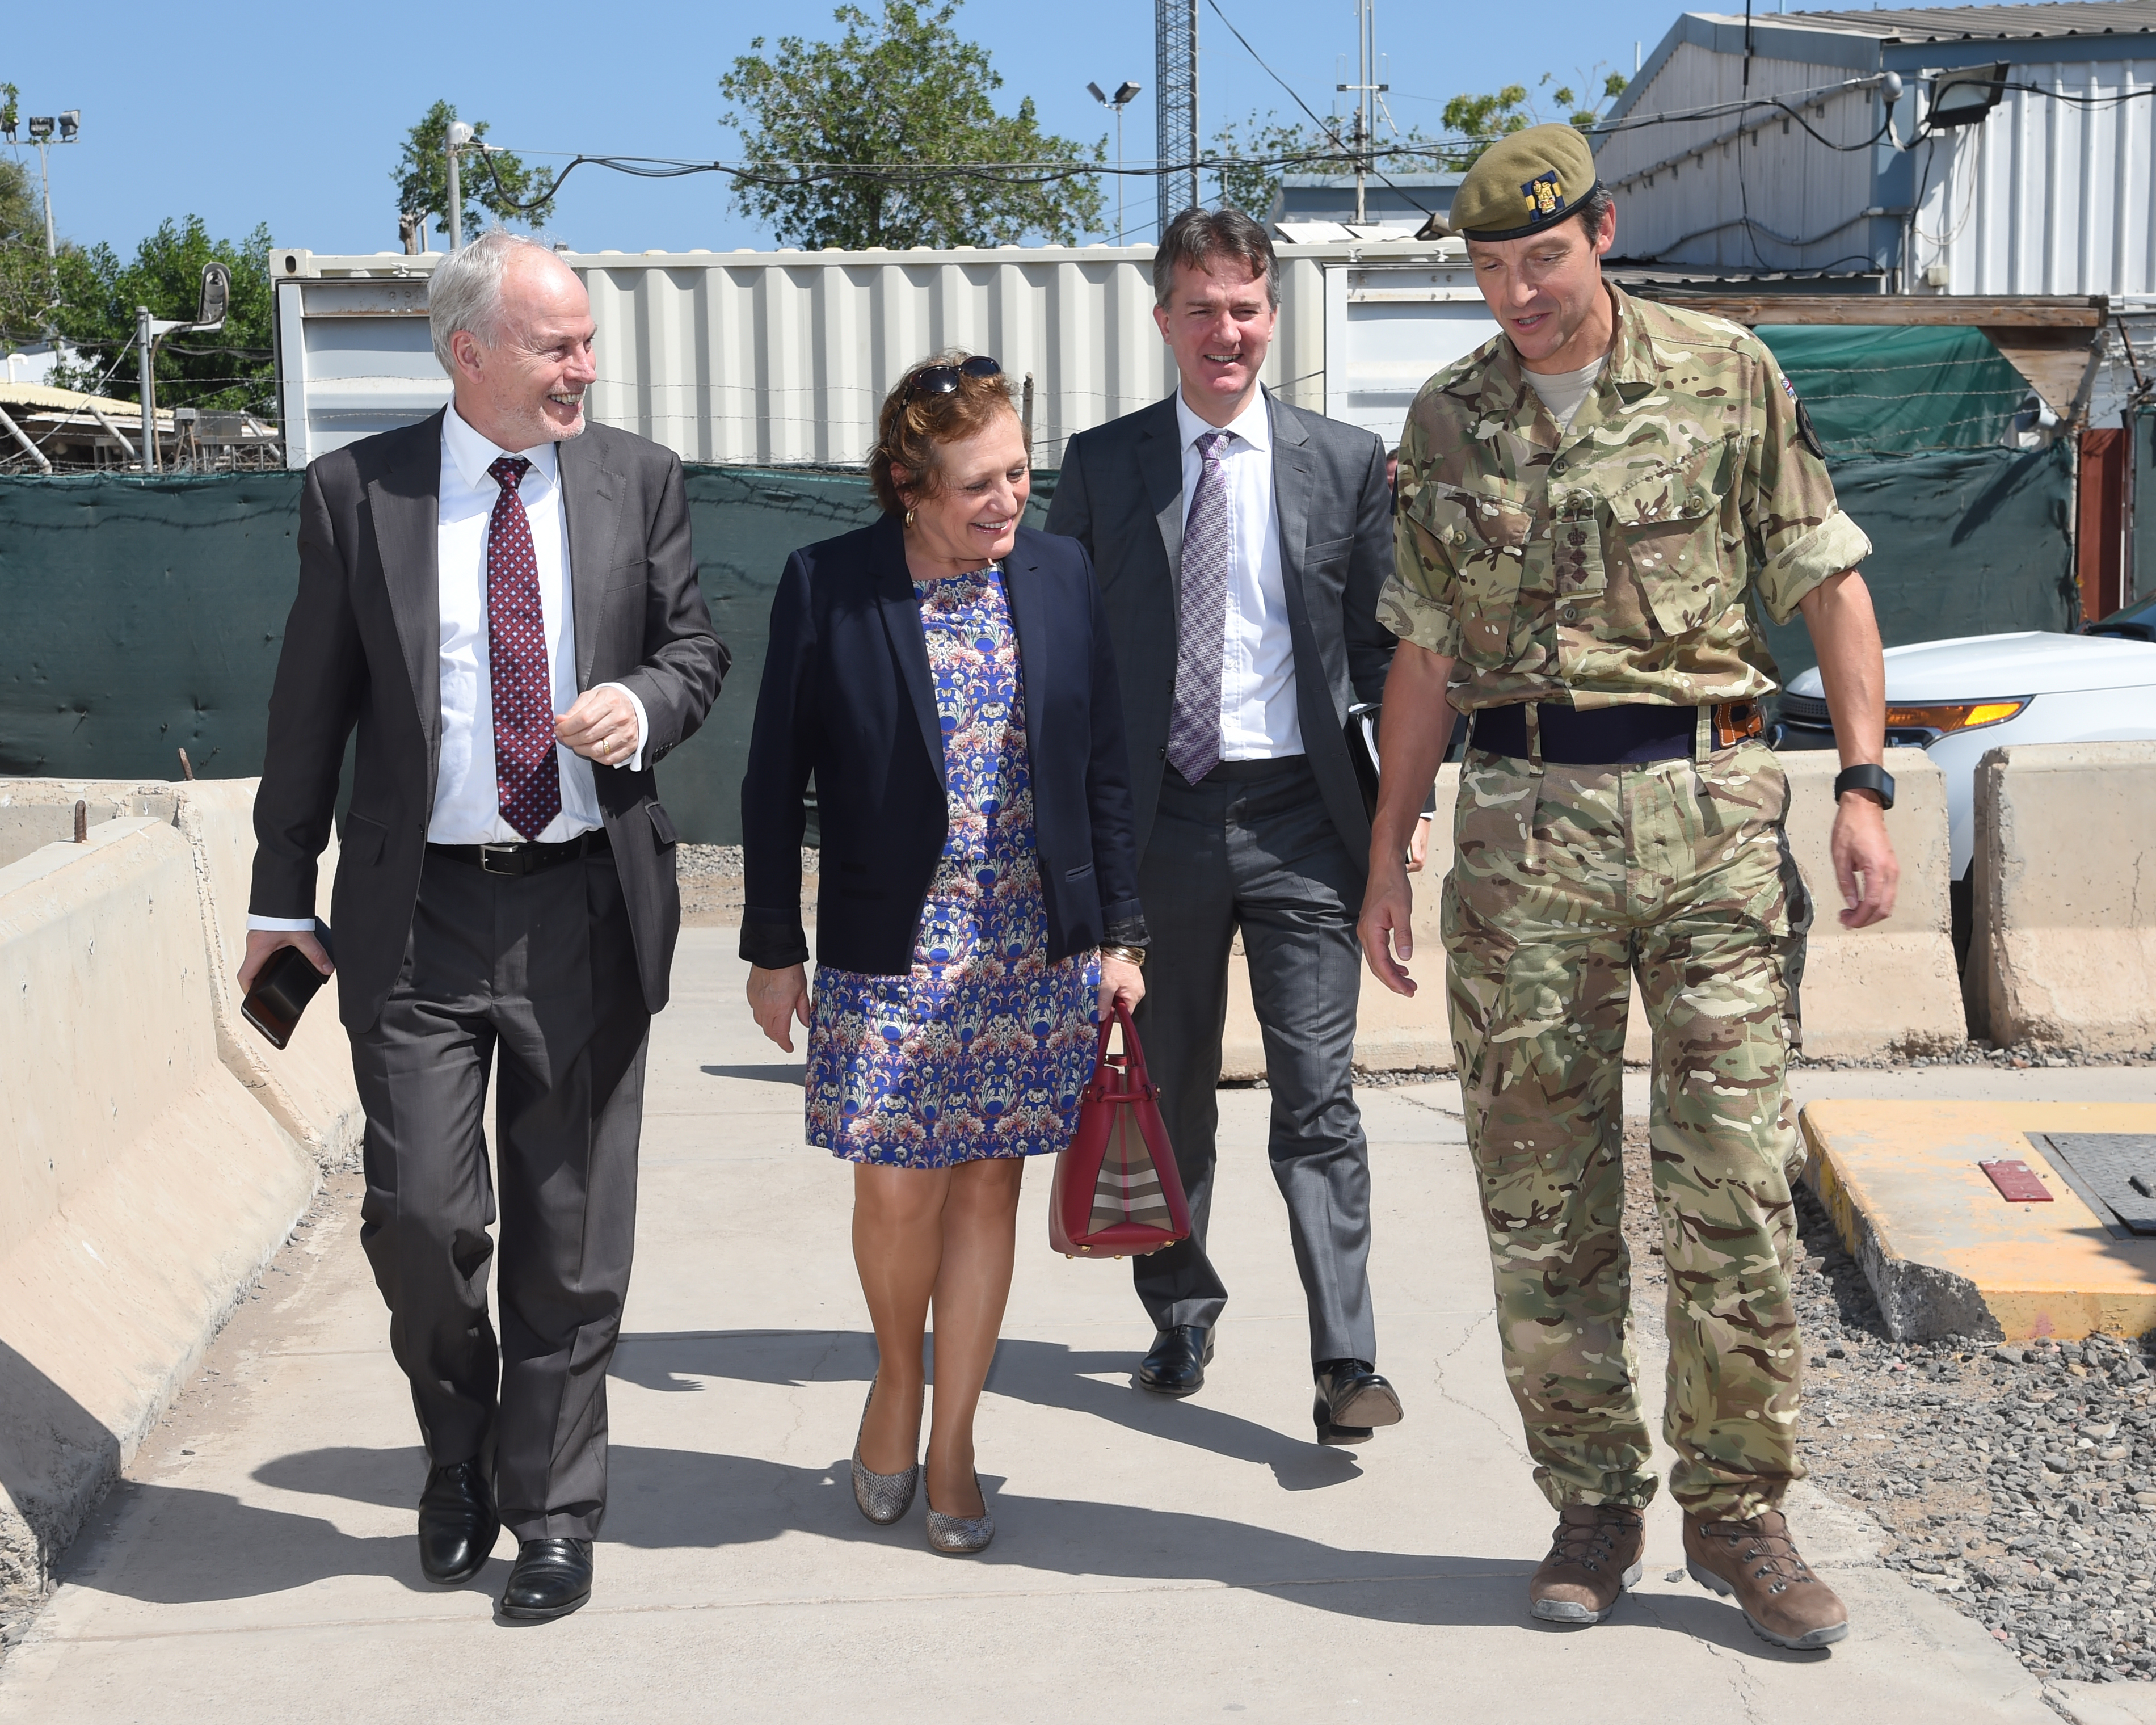 British Army Col. Adam Crawley, right, director of plans and policy for Combined Joint Task Force-Horn of Africa escorts dignitaries from the United Kingdom as they arrive at Camp Lemmonier, Djibouti, Jan. 23, 2017. Sir Nicholas Kay, U.K. special envoy to the Horn of Africa, left, joined Her Majesty's Ambassador Susanna Moorehead, British ambassador to Ethiopia and Djibouti to meet with CJTF-HOA Commanding General Maj. Gen. Kurt Sonntag to gain a greater understanding of CJTF-HOA's mission and execution. (U.S. Air National Guard photo by Master Sgt. Paul Gorman)